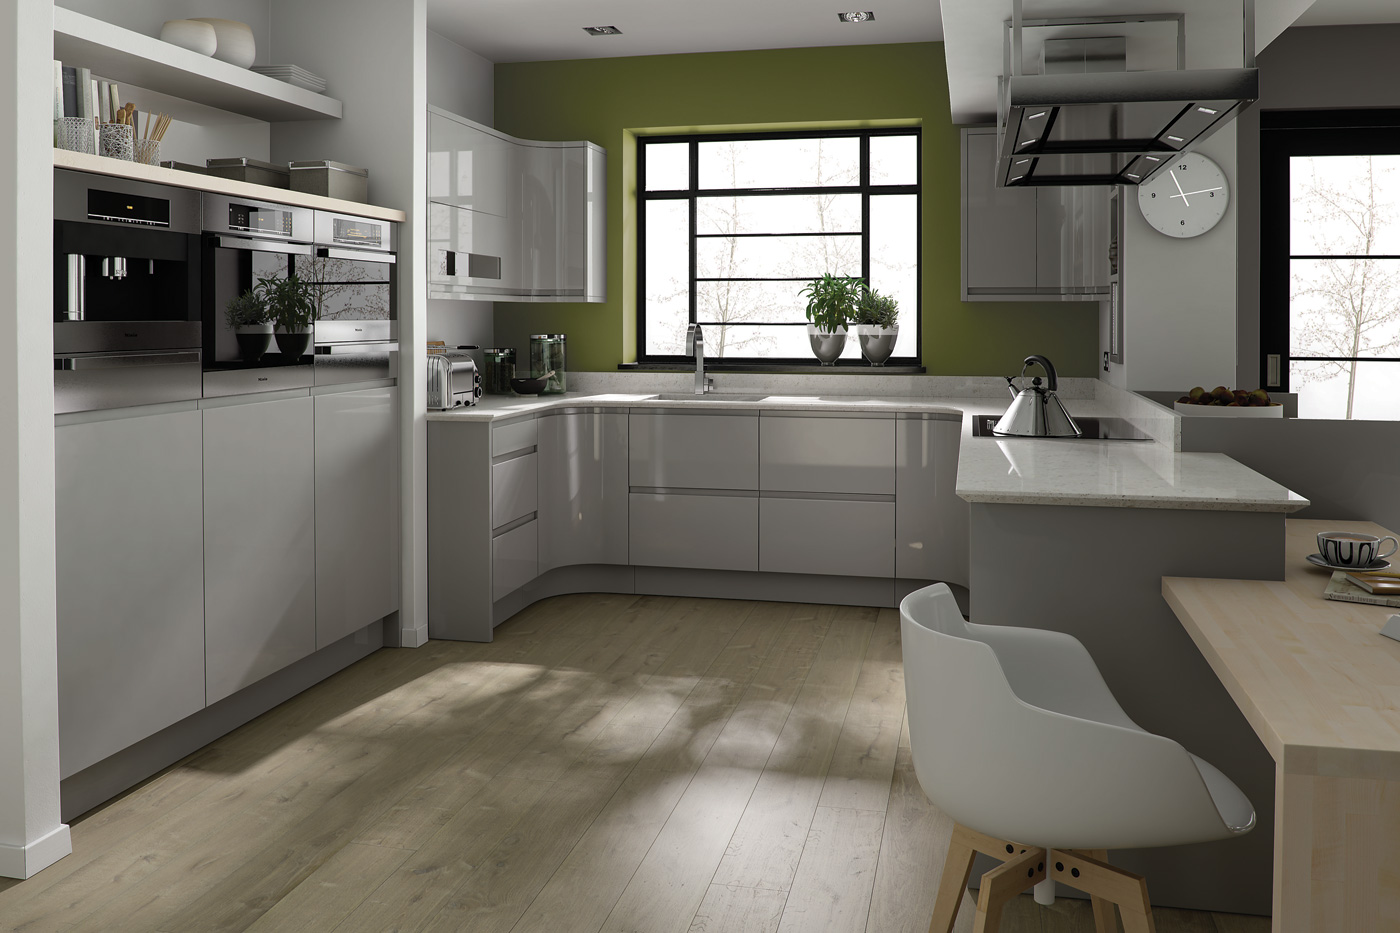 Top Tips for Planning and Designing your new kitchen